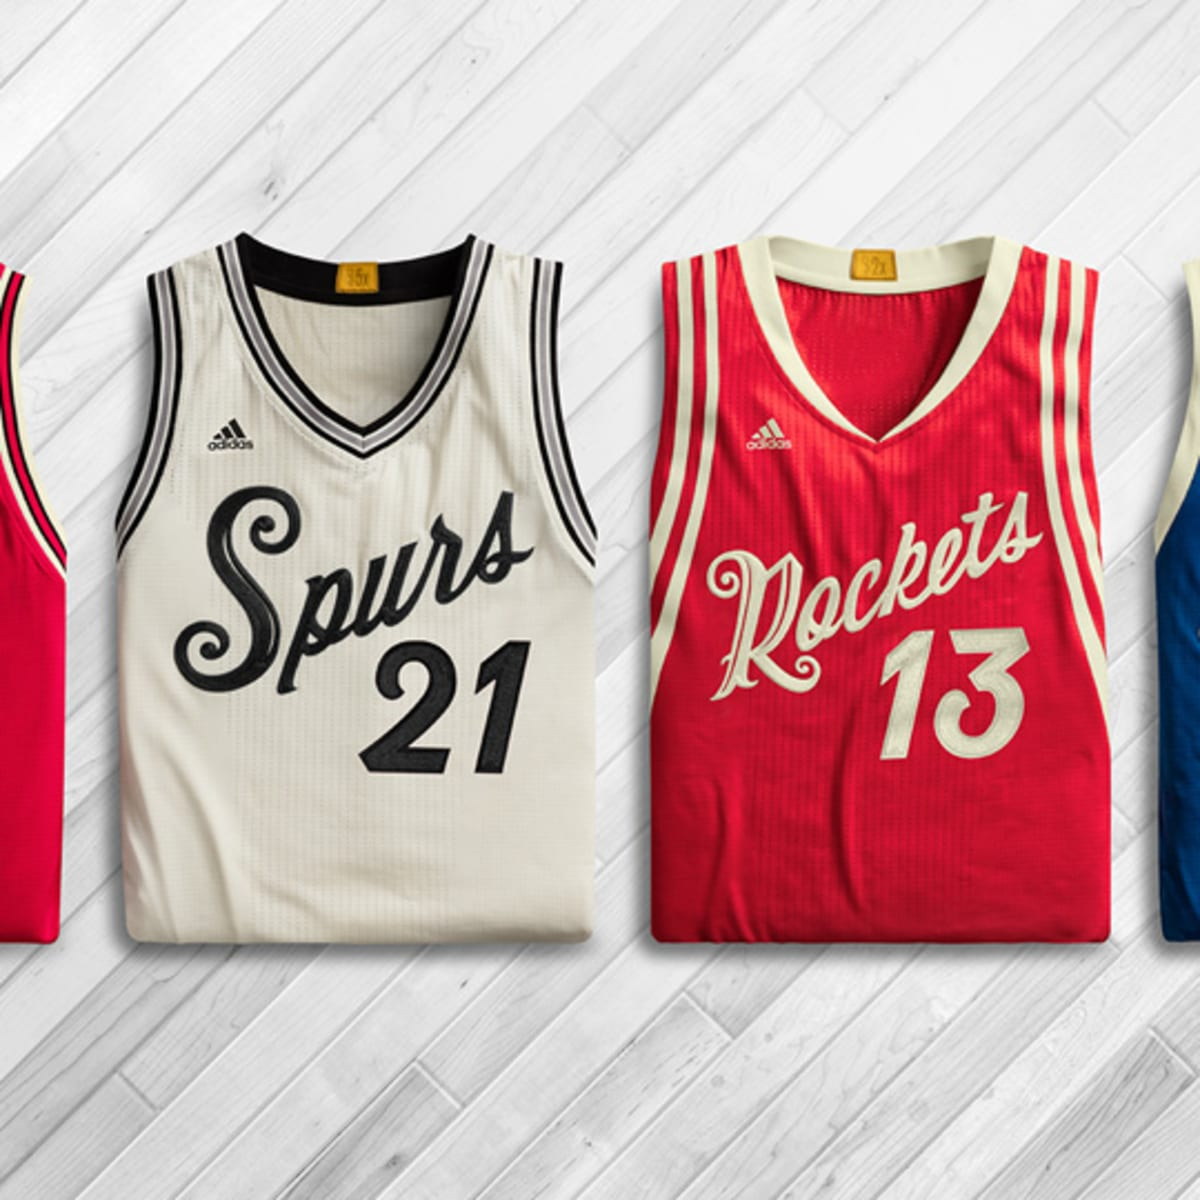 NBA Christmas Day jerseys featured in